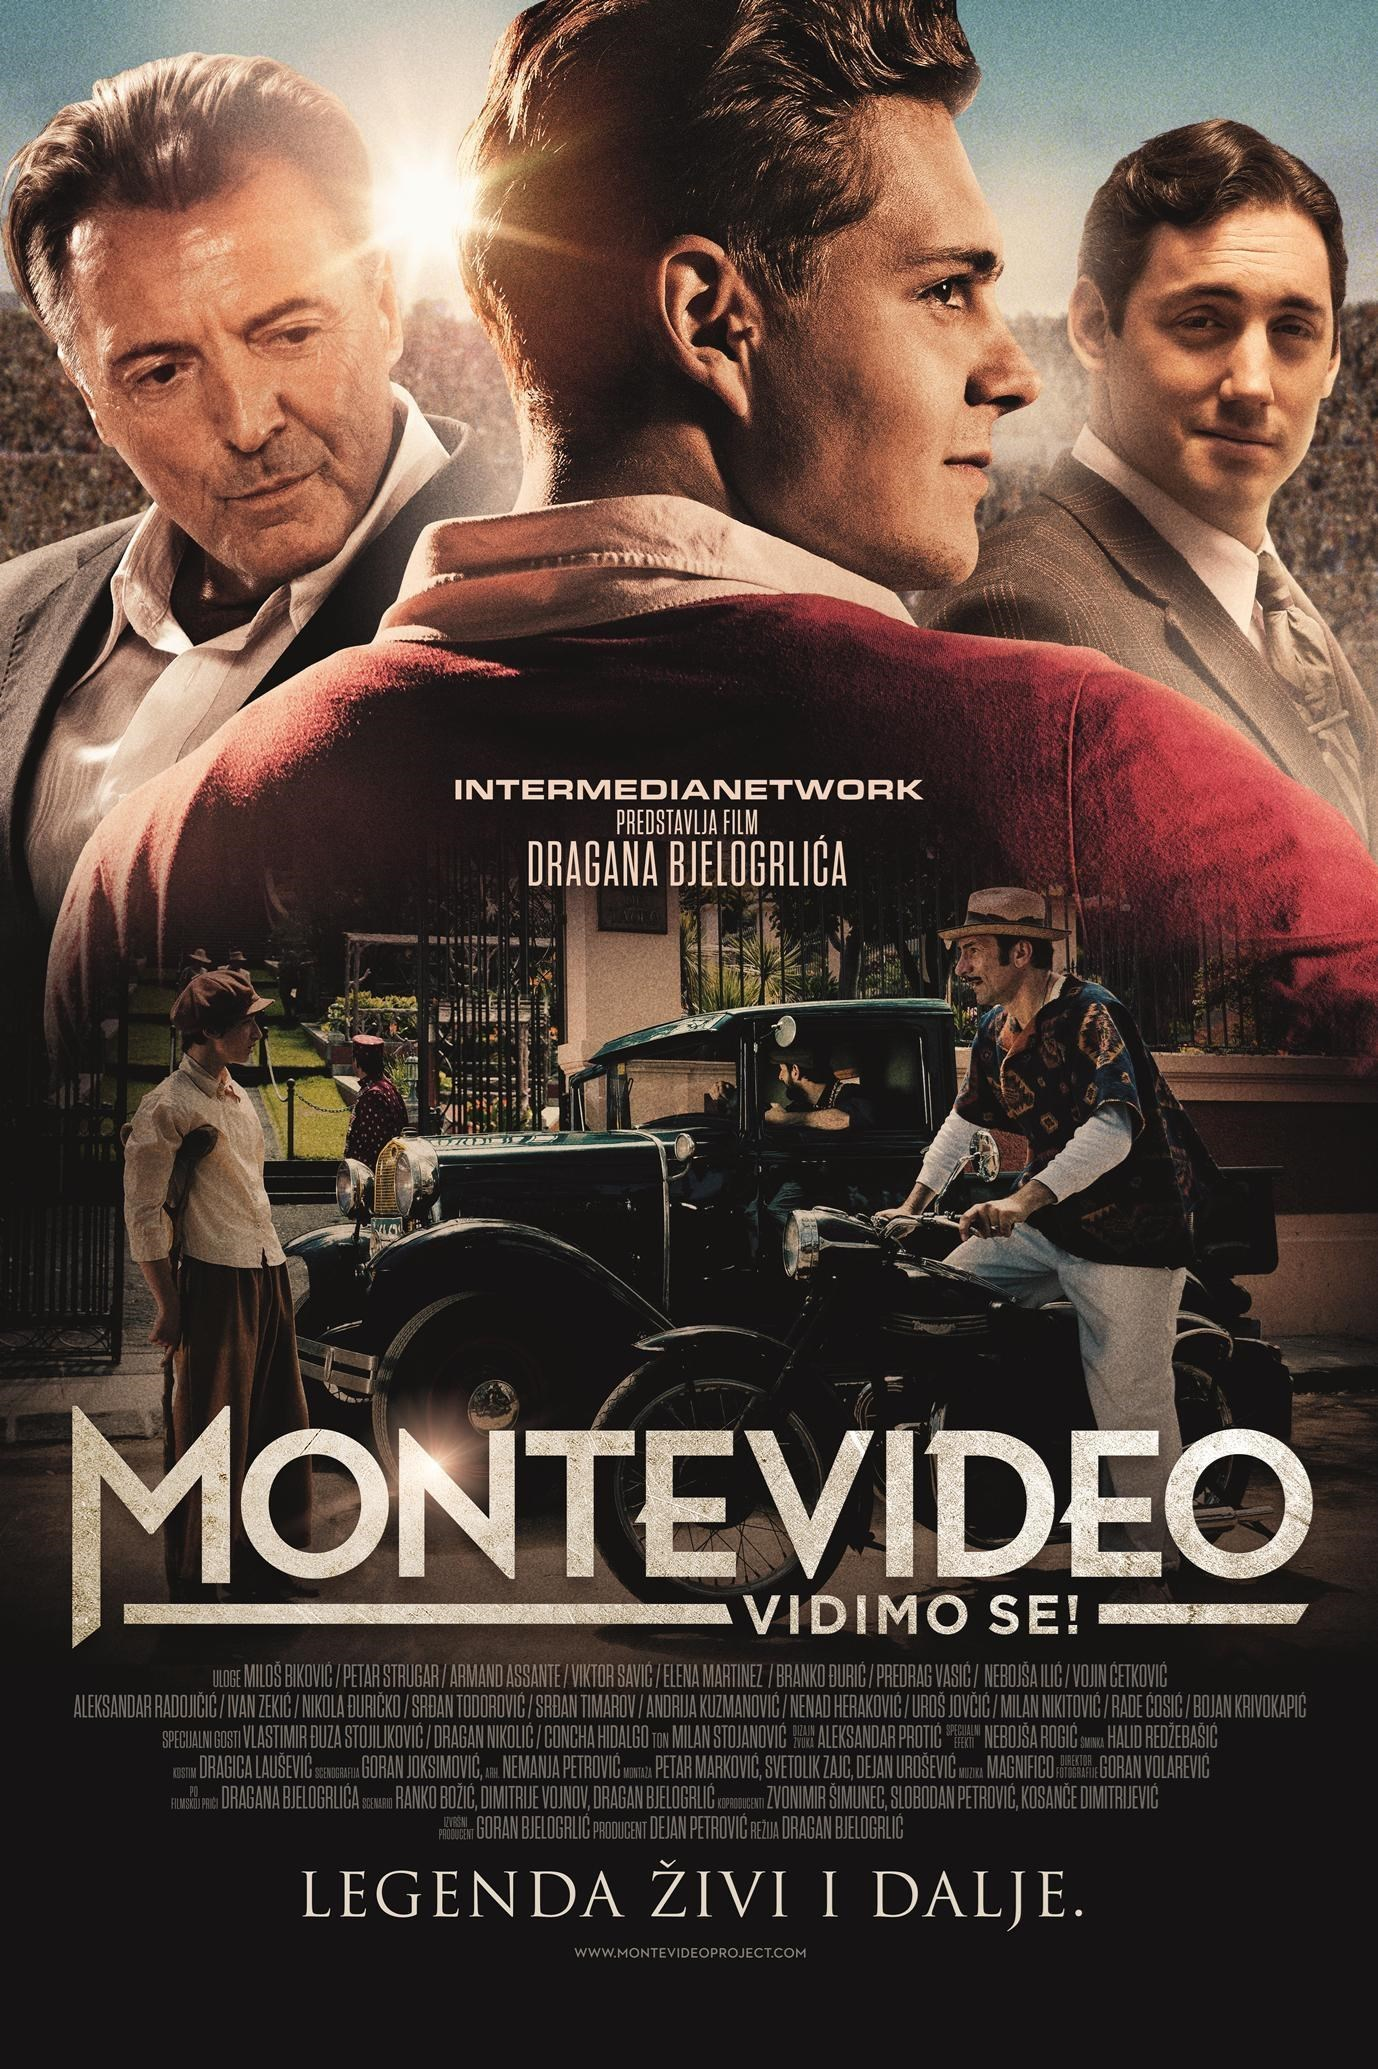 See You in Montevideo poster